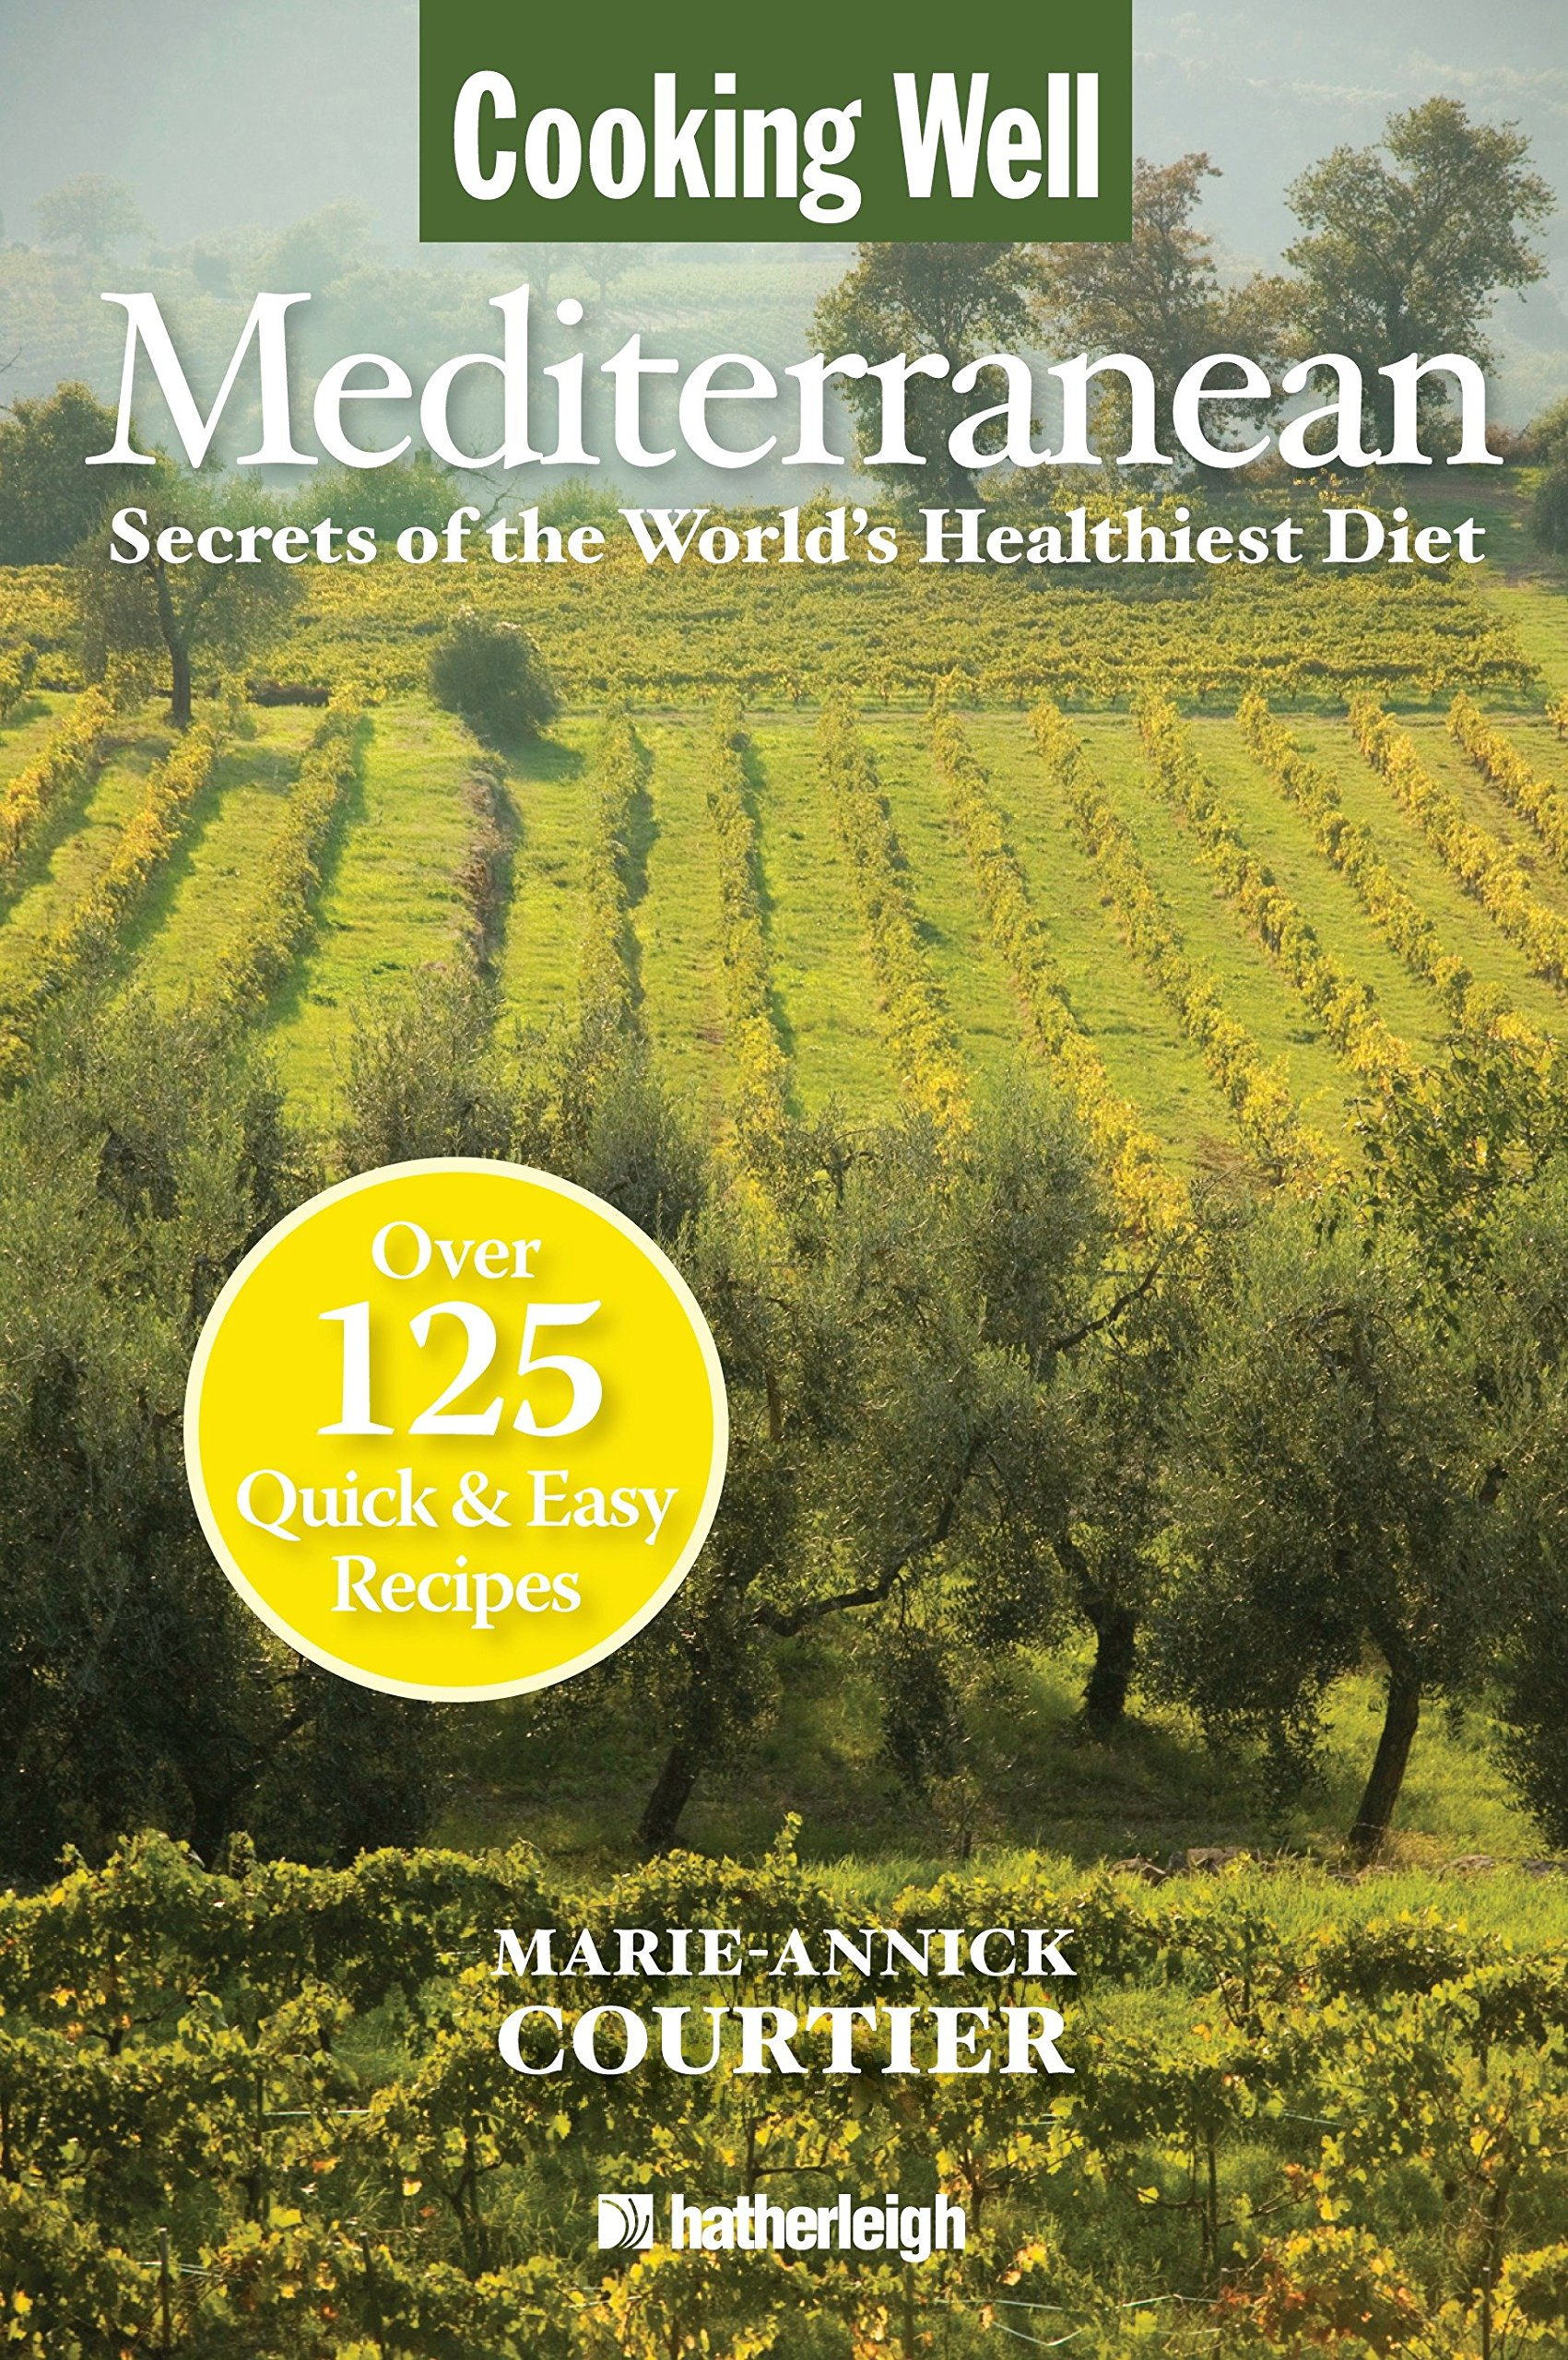 Cooking Well: Mediterranean: Secrets of the Worlds Healthiest Diet, Over 125 Quick & Easy Recipes